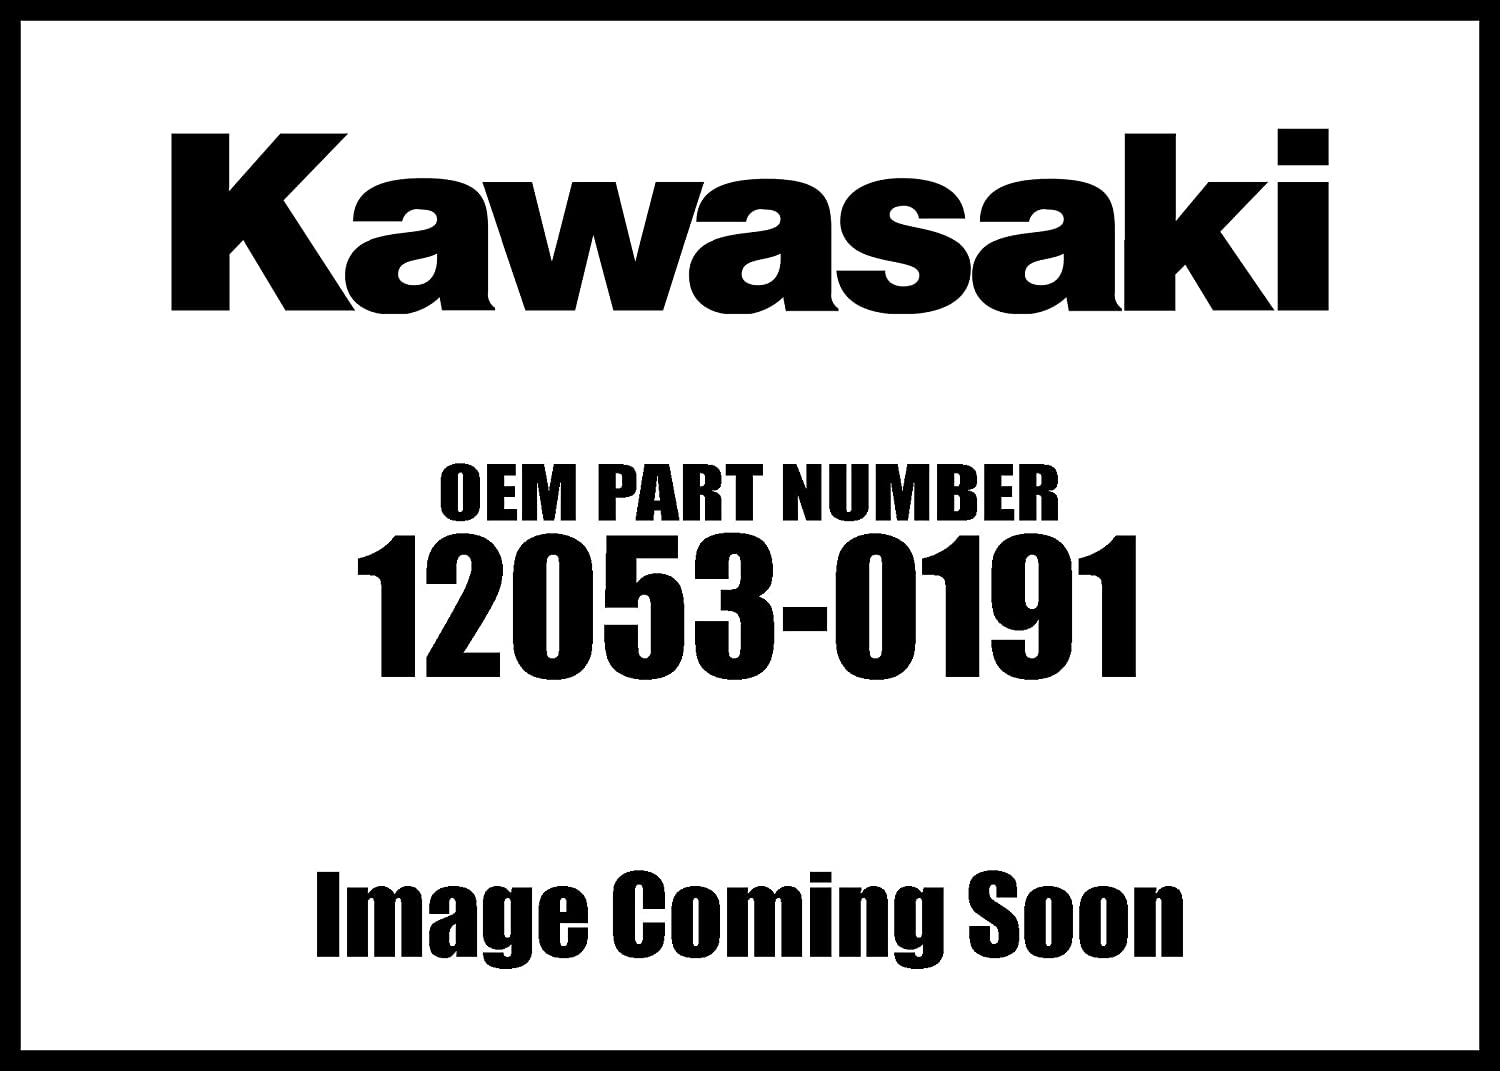 Kawasaki SEAL limited product Guide-CHAINRR Year-end gift 12053-0191